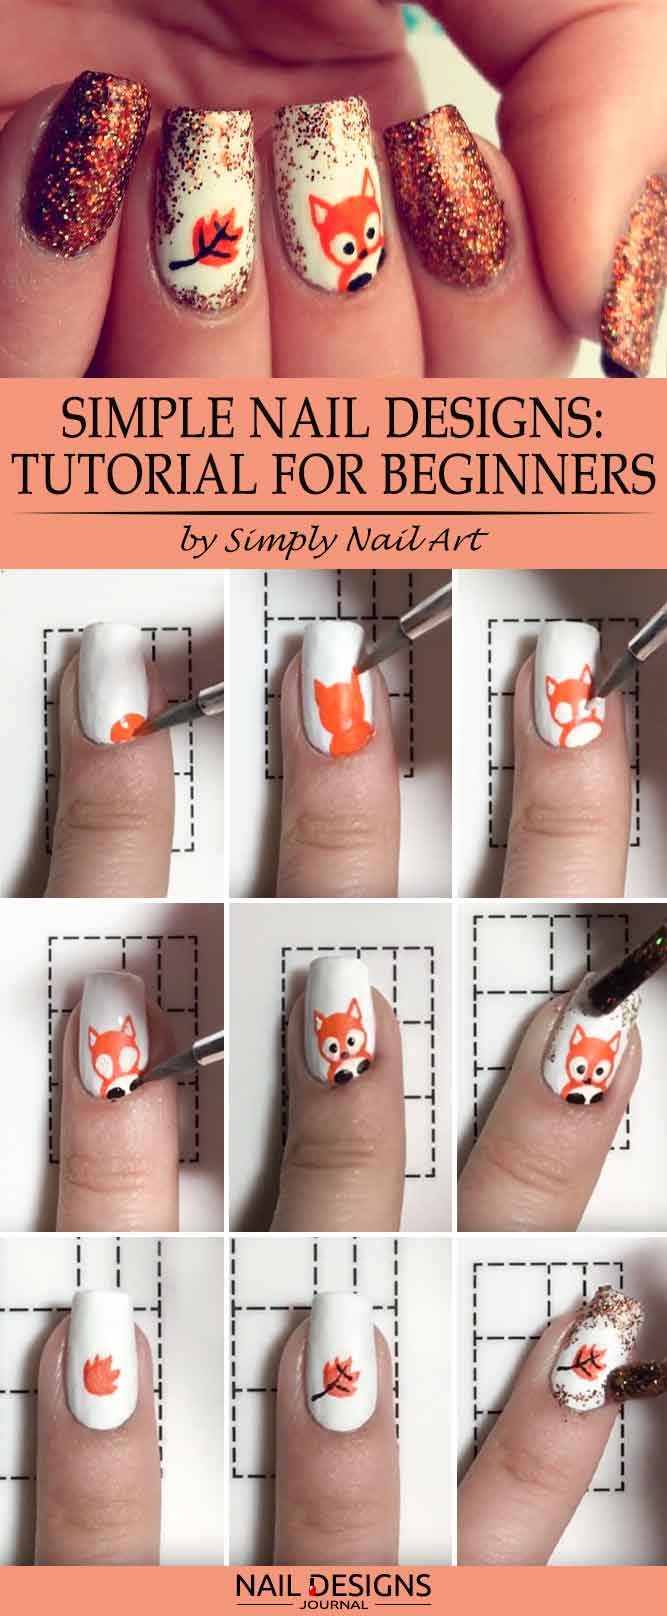 Simple Nail Designs Tutorial for Beginners